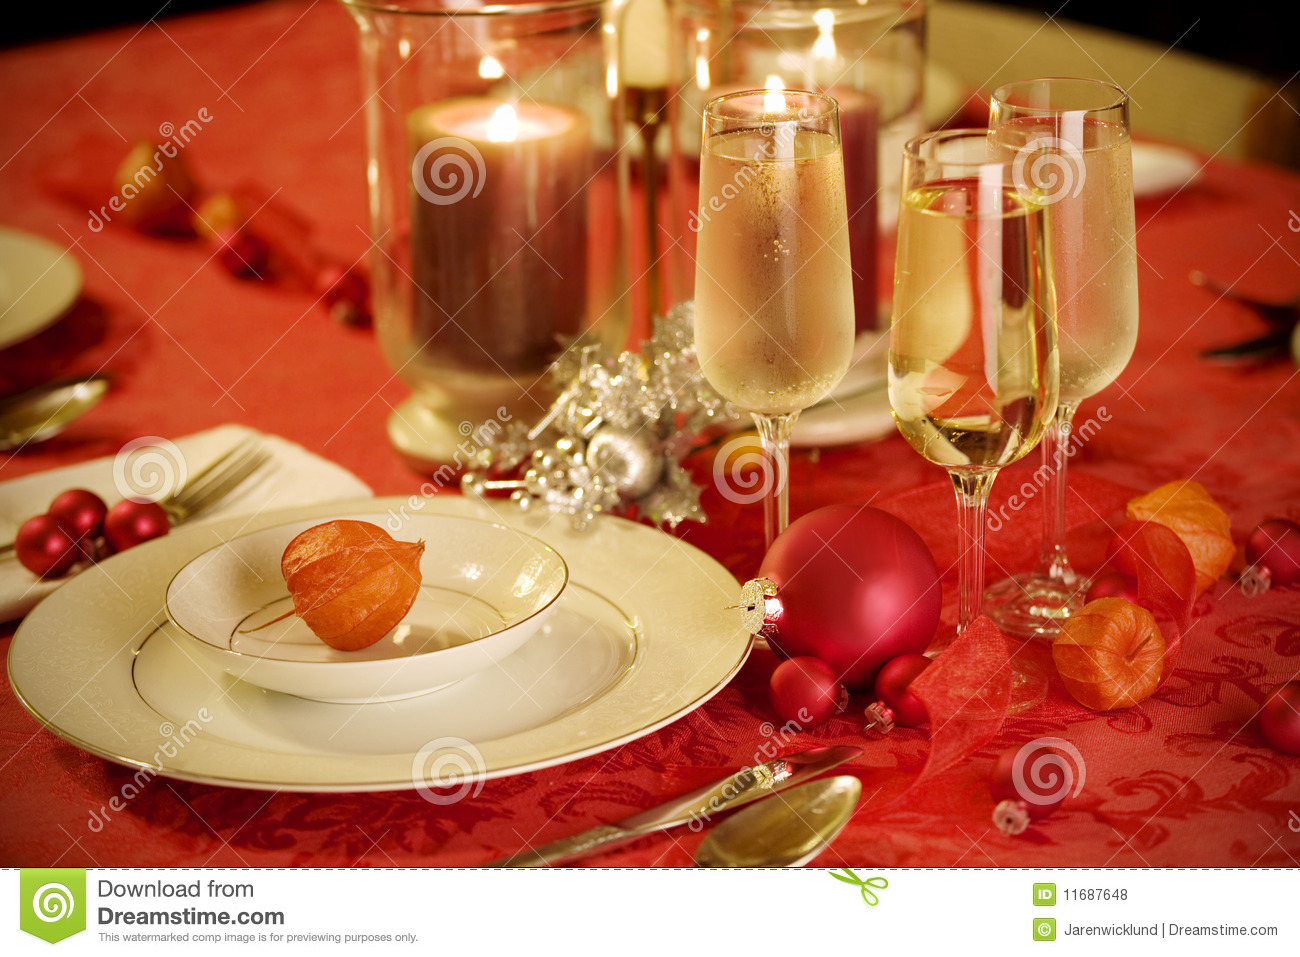 Elegant Christmas Table Setting In Red And Gold Stock Photo - Image of drink dining 11687648 & Elegant Christmas Table Setting In Red And Gold Stock Photo - Image ...